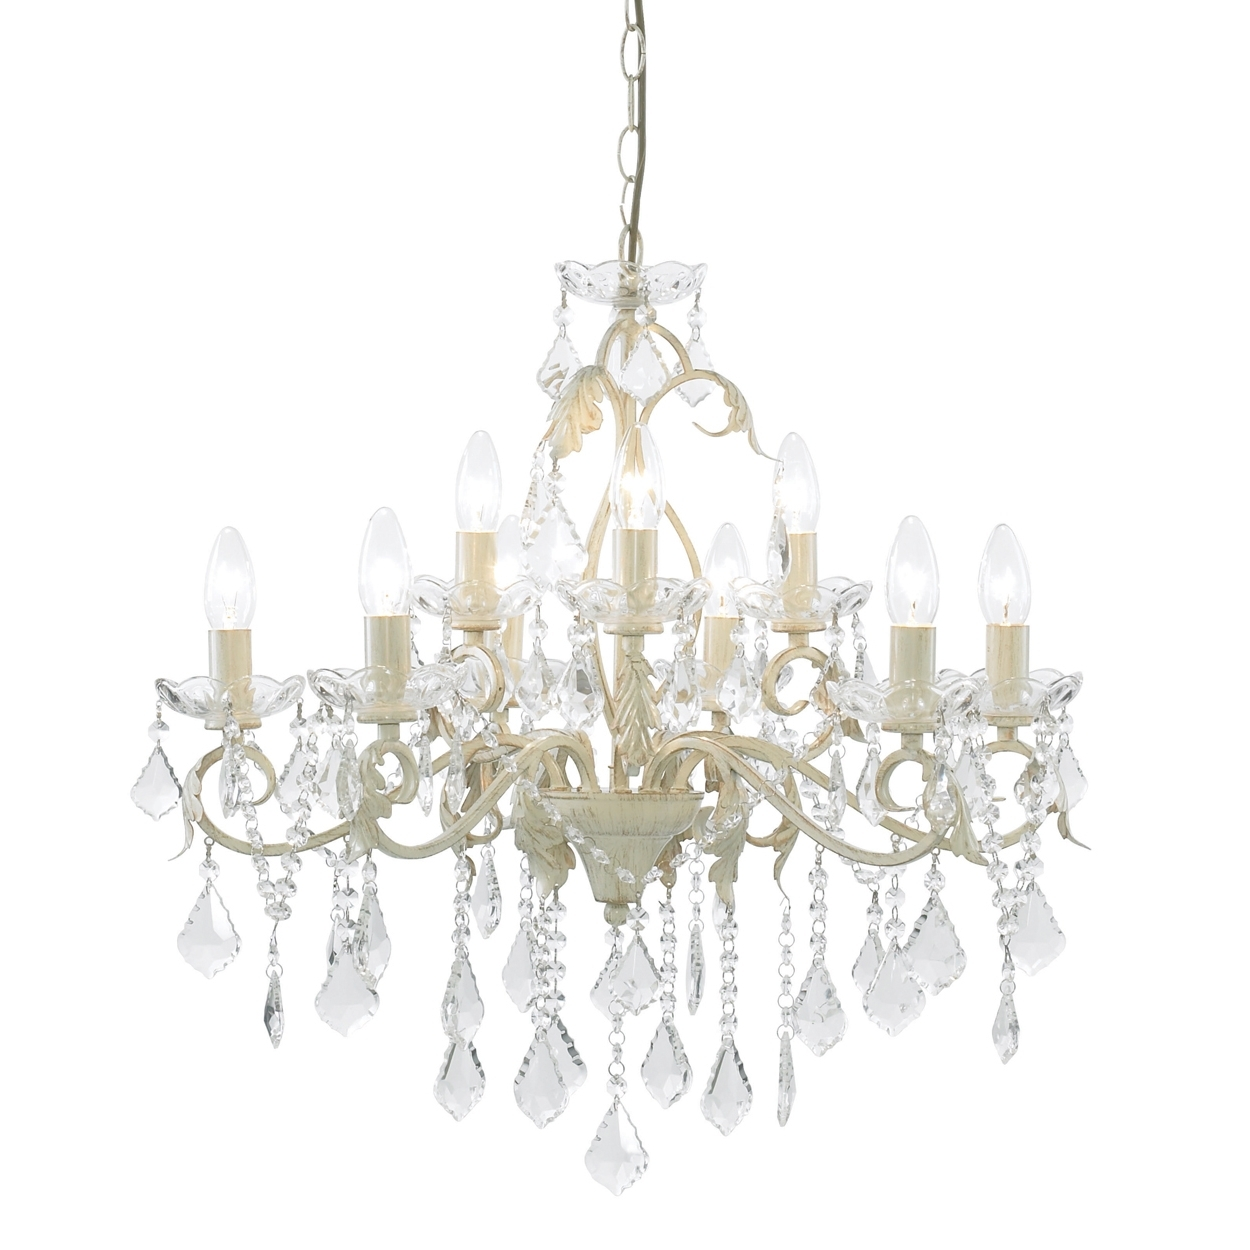 Chandeliers Design : Magnificent Cream And Gold Crystal Chandelier For Favorite Cream Chandeliers (View 7 of 15)